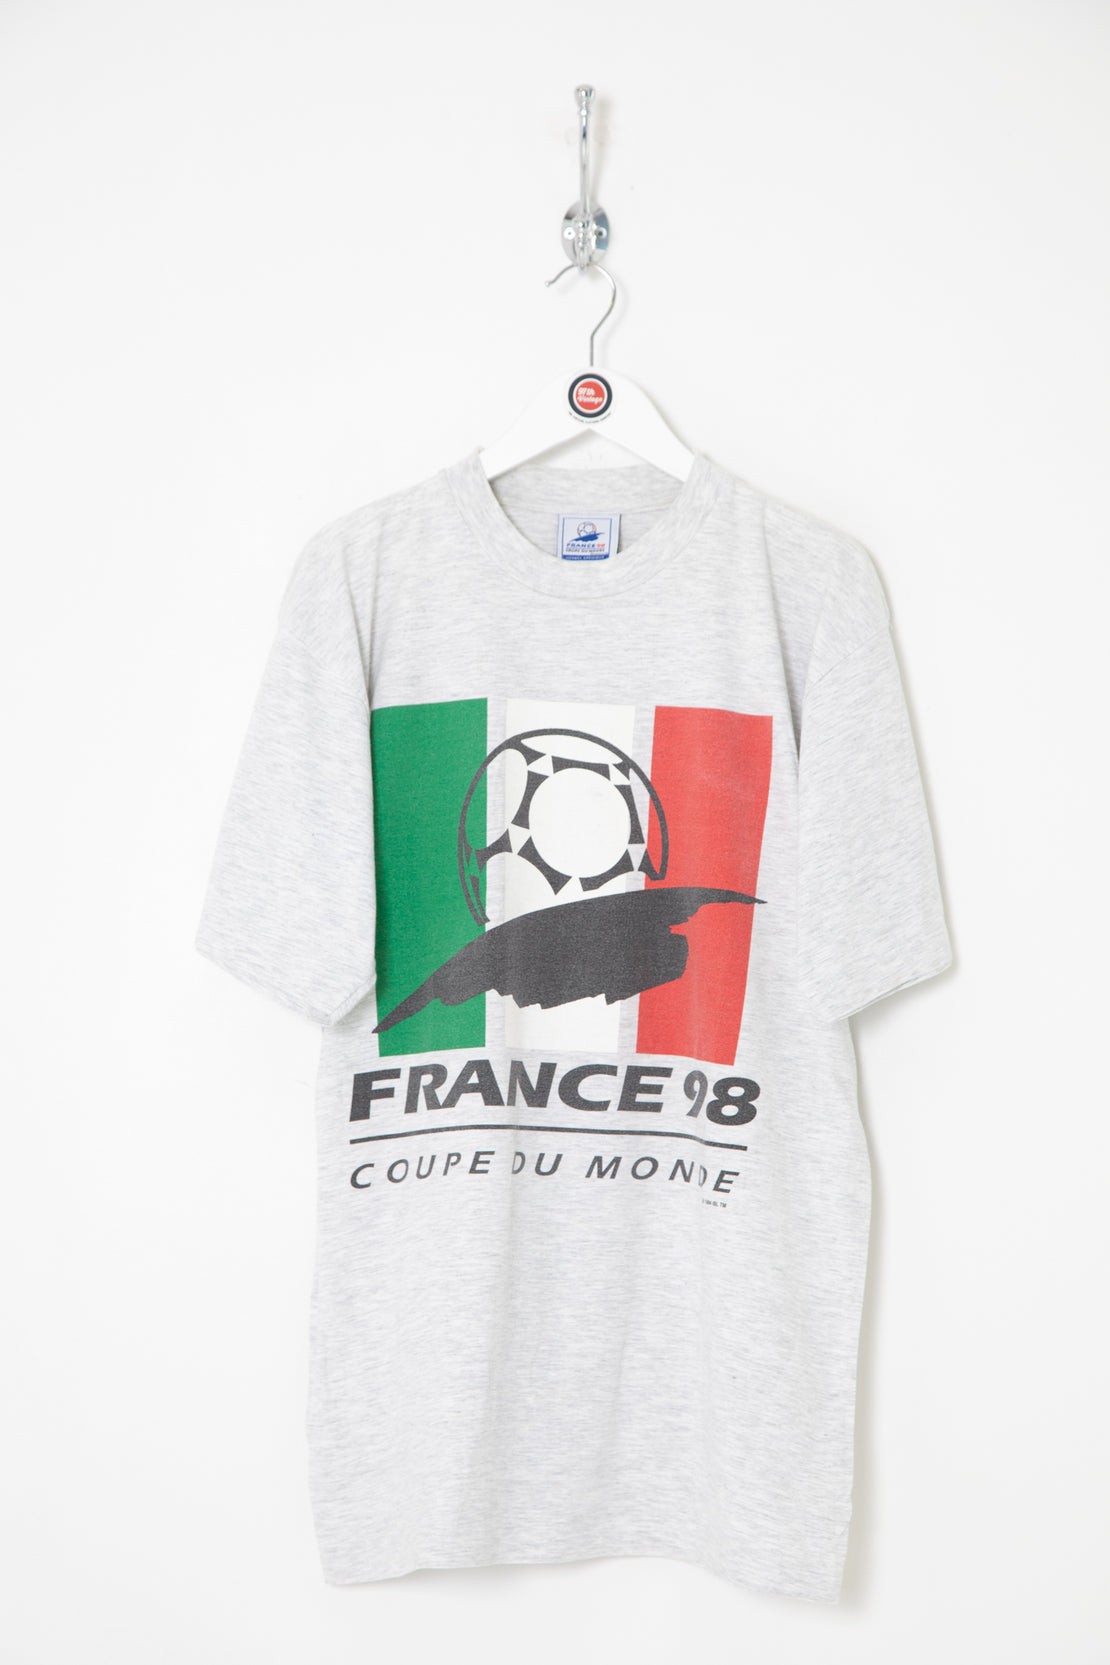 1998 France World Cup 'Italy' T-Shirt (M)